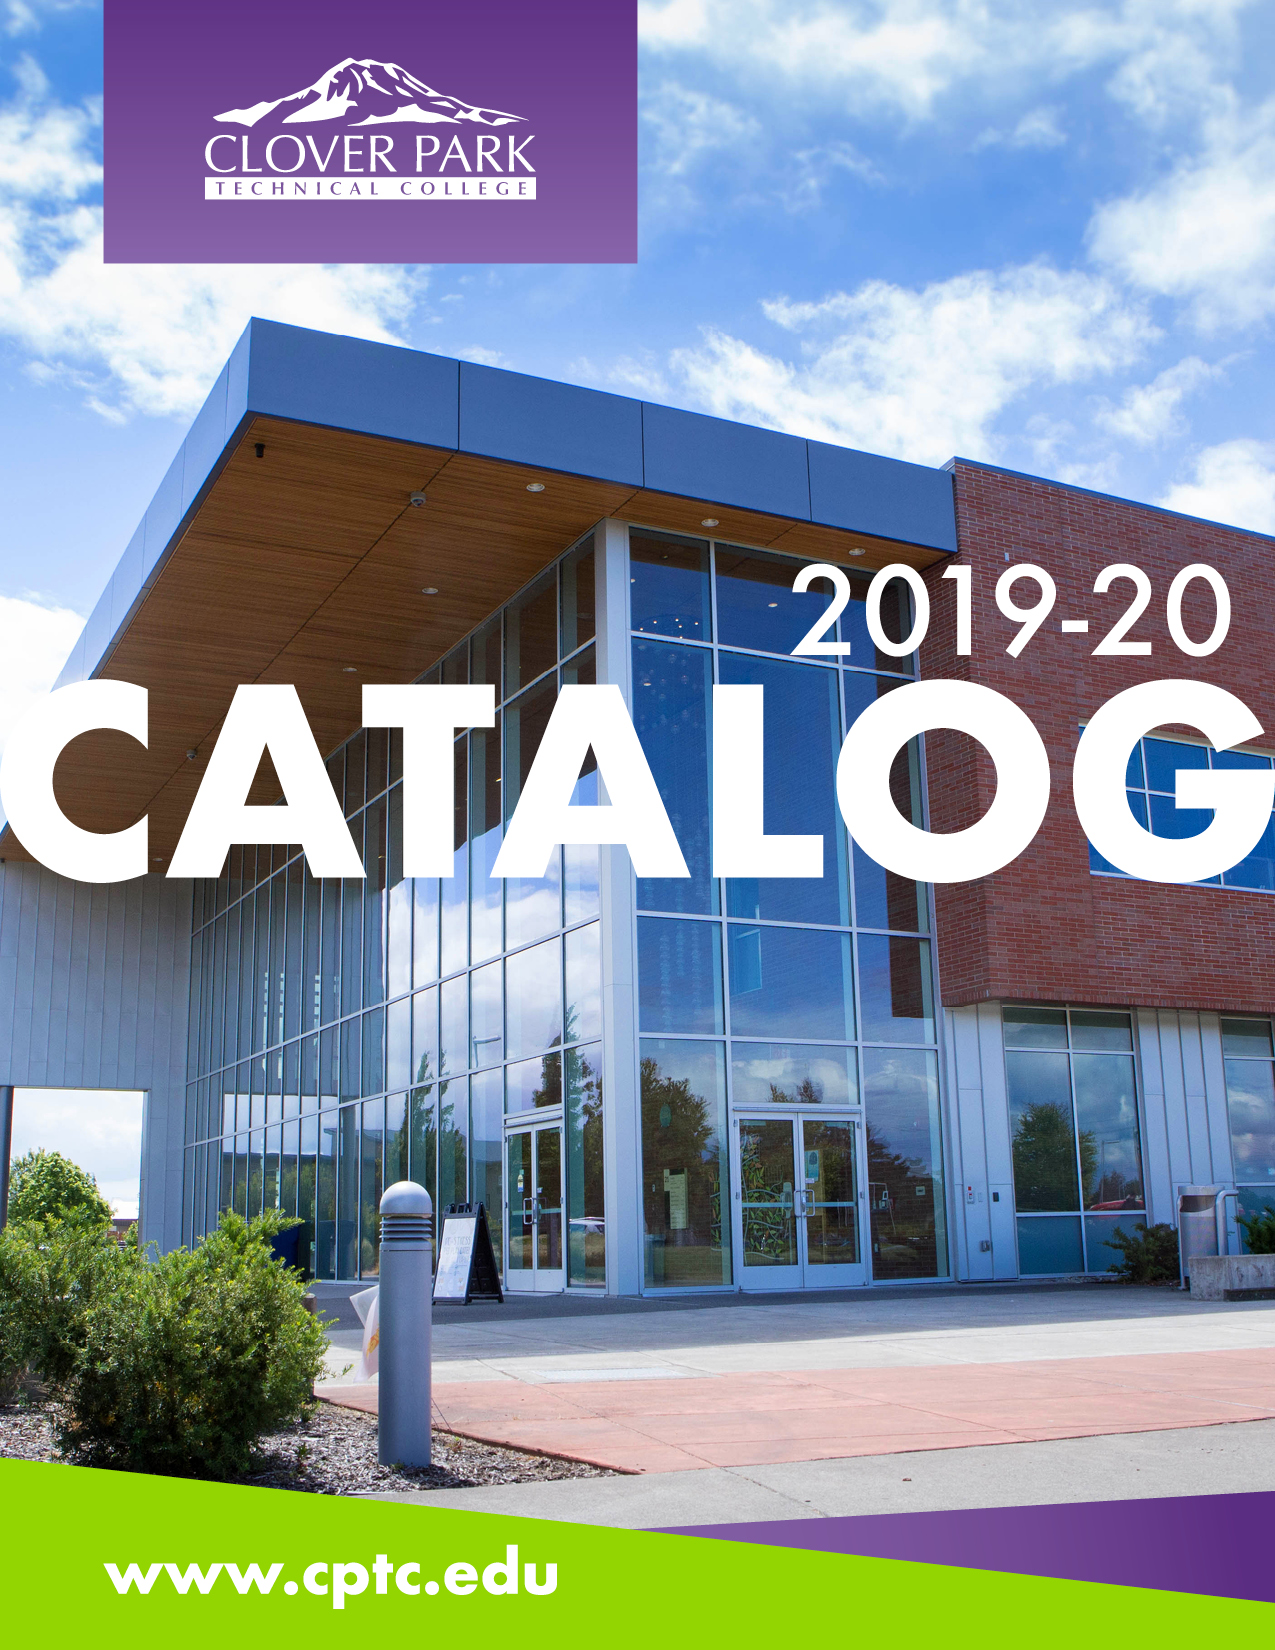 Image of campus building. Text: 2019-20 CATALOG